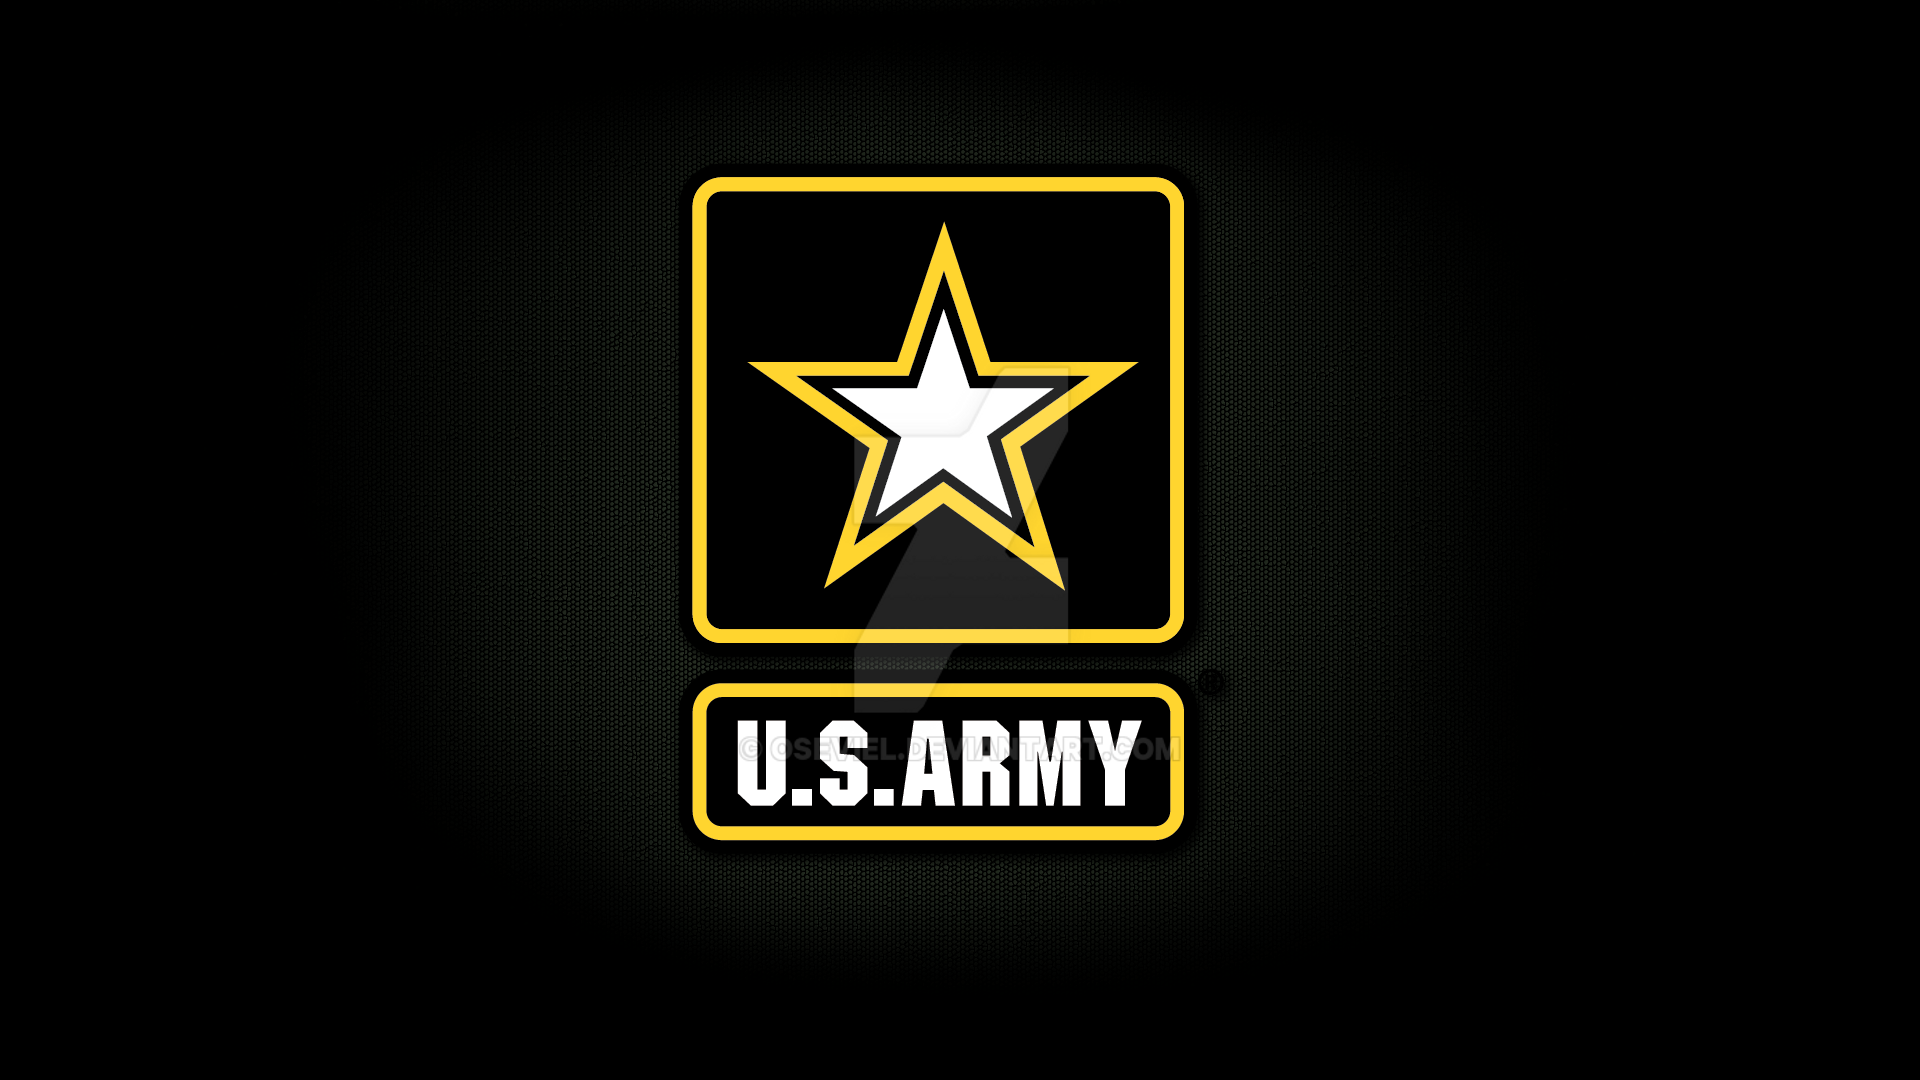 U.S Army 1920 X 1080p Wallpaper By Oseviel By Oseviel On